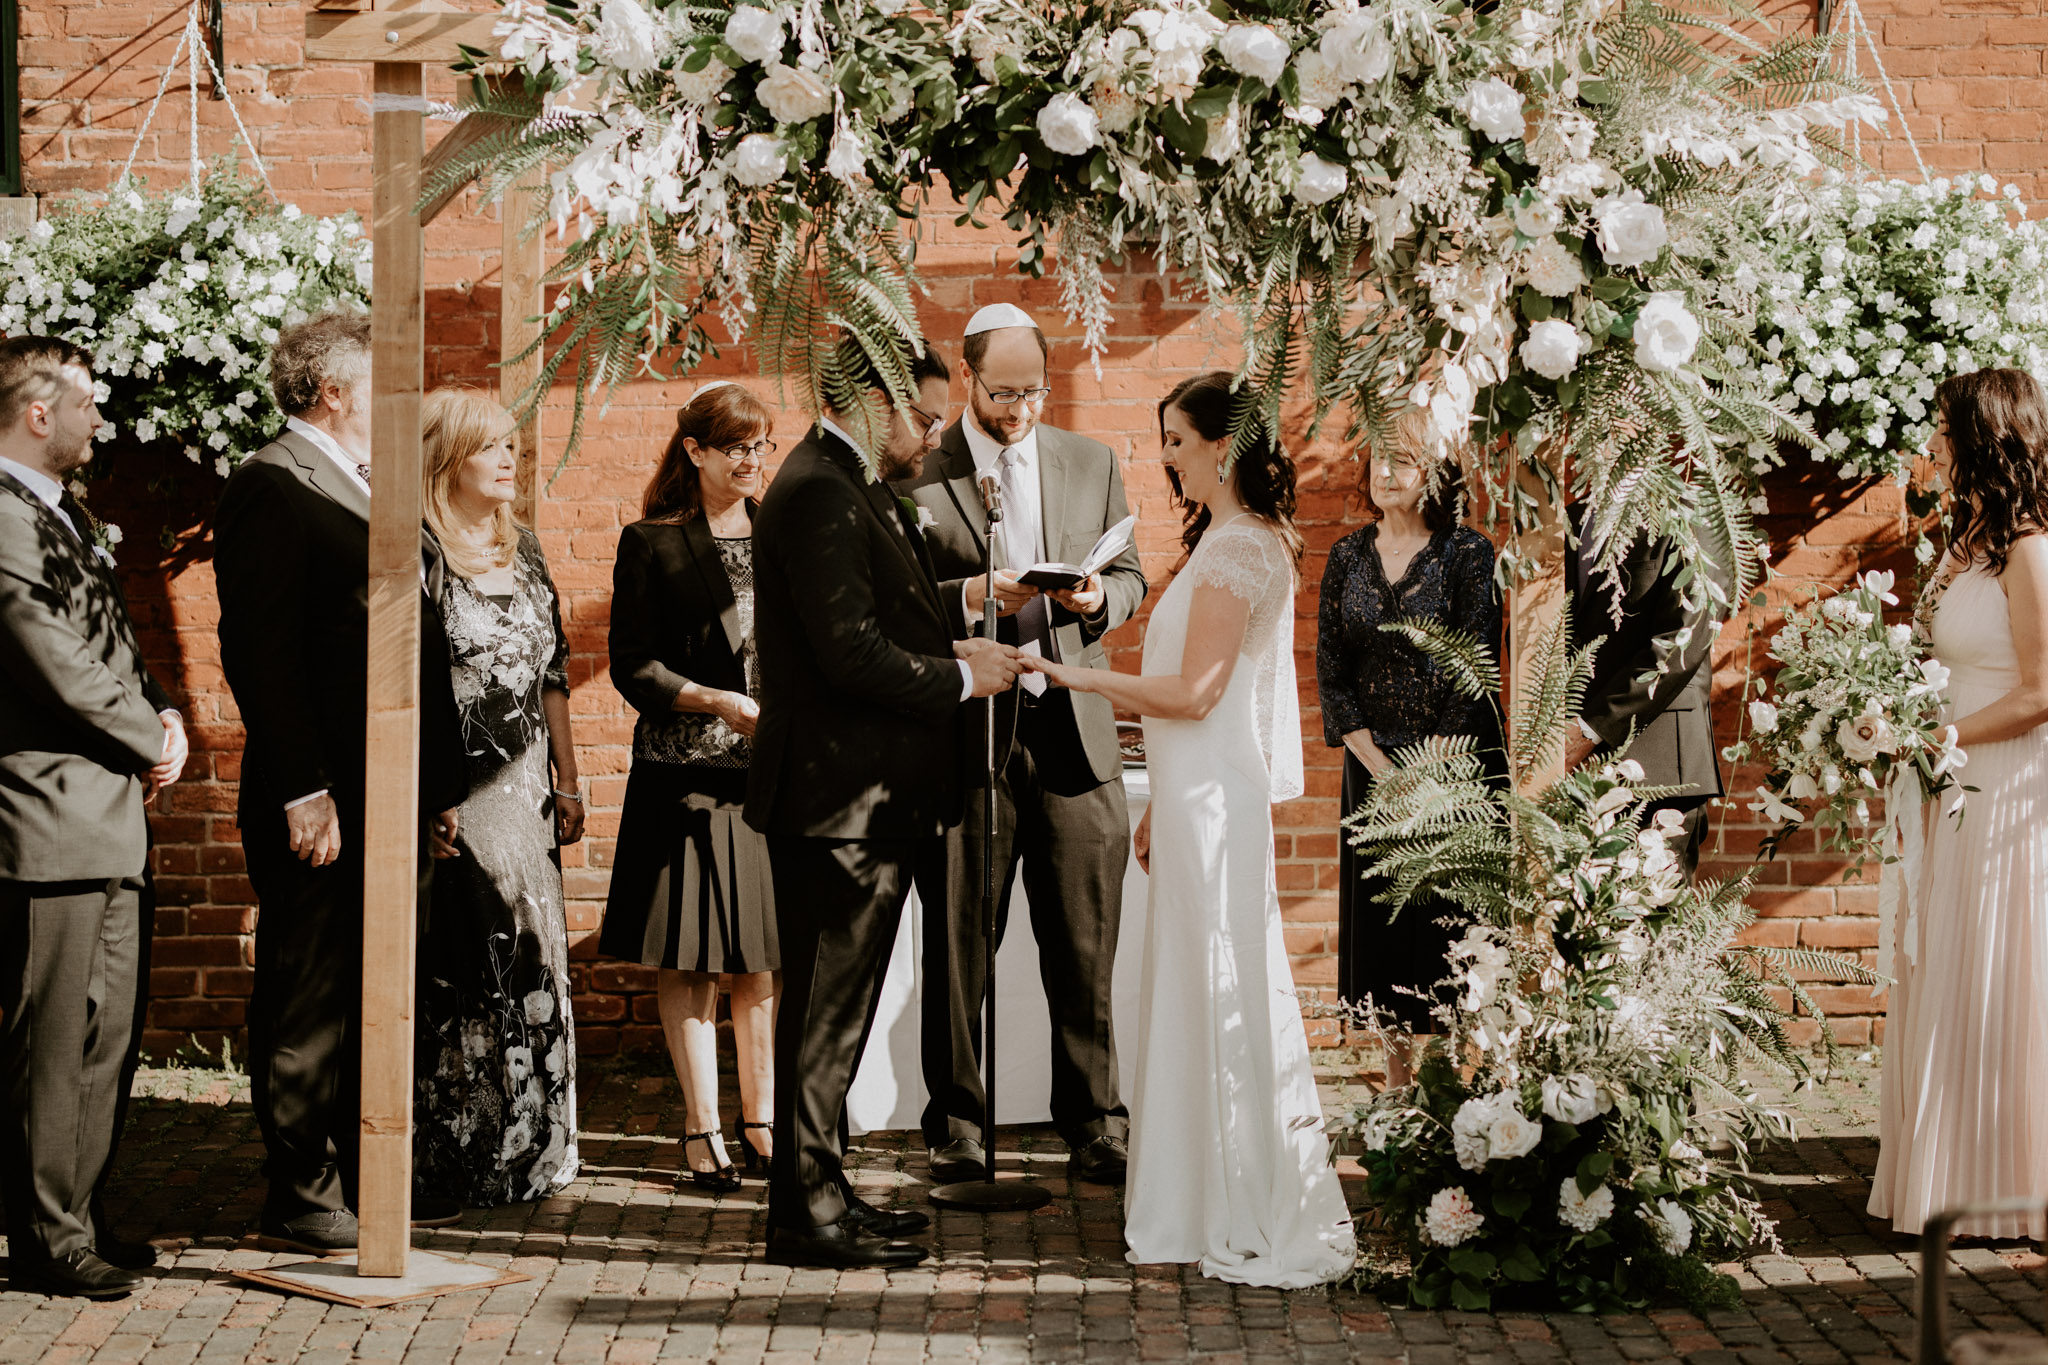 Archeo Wedding - Distillery District -White Rose Chuppah by Florist Tanya List